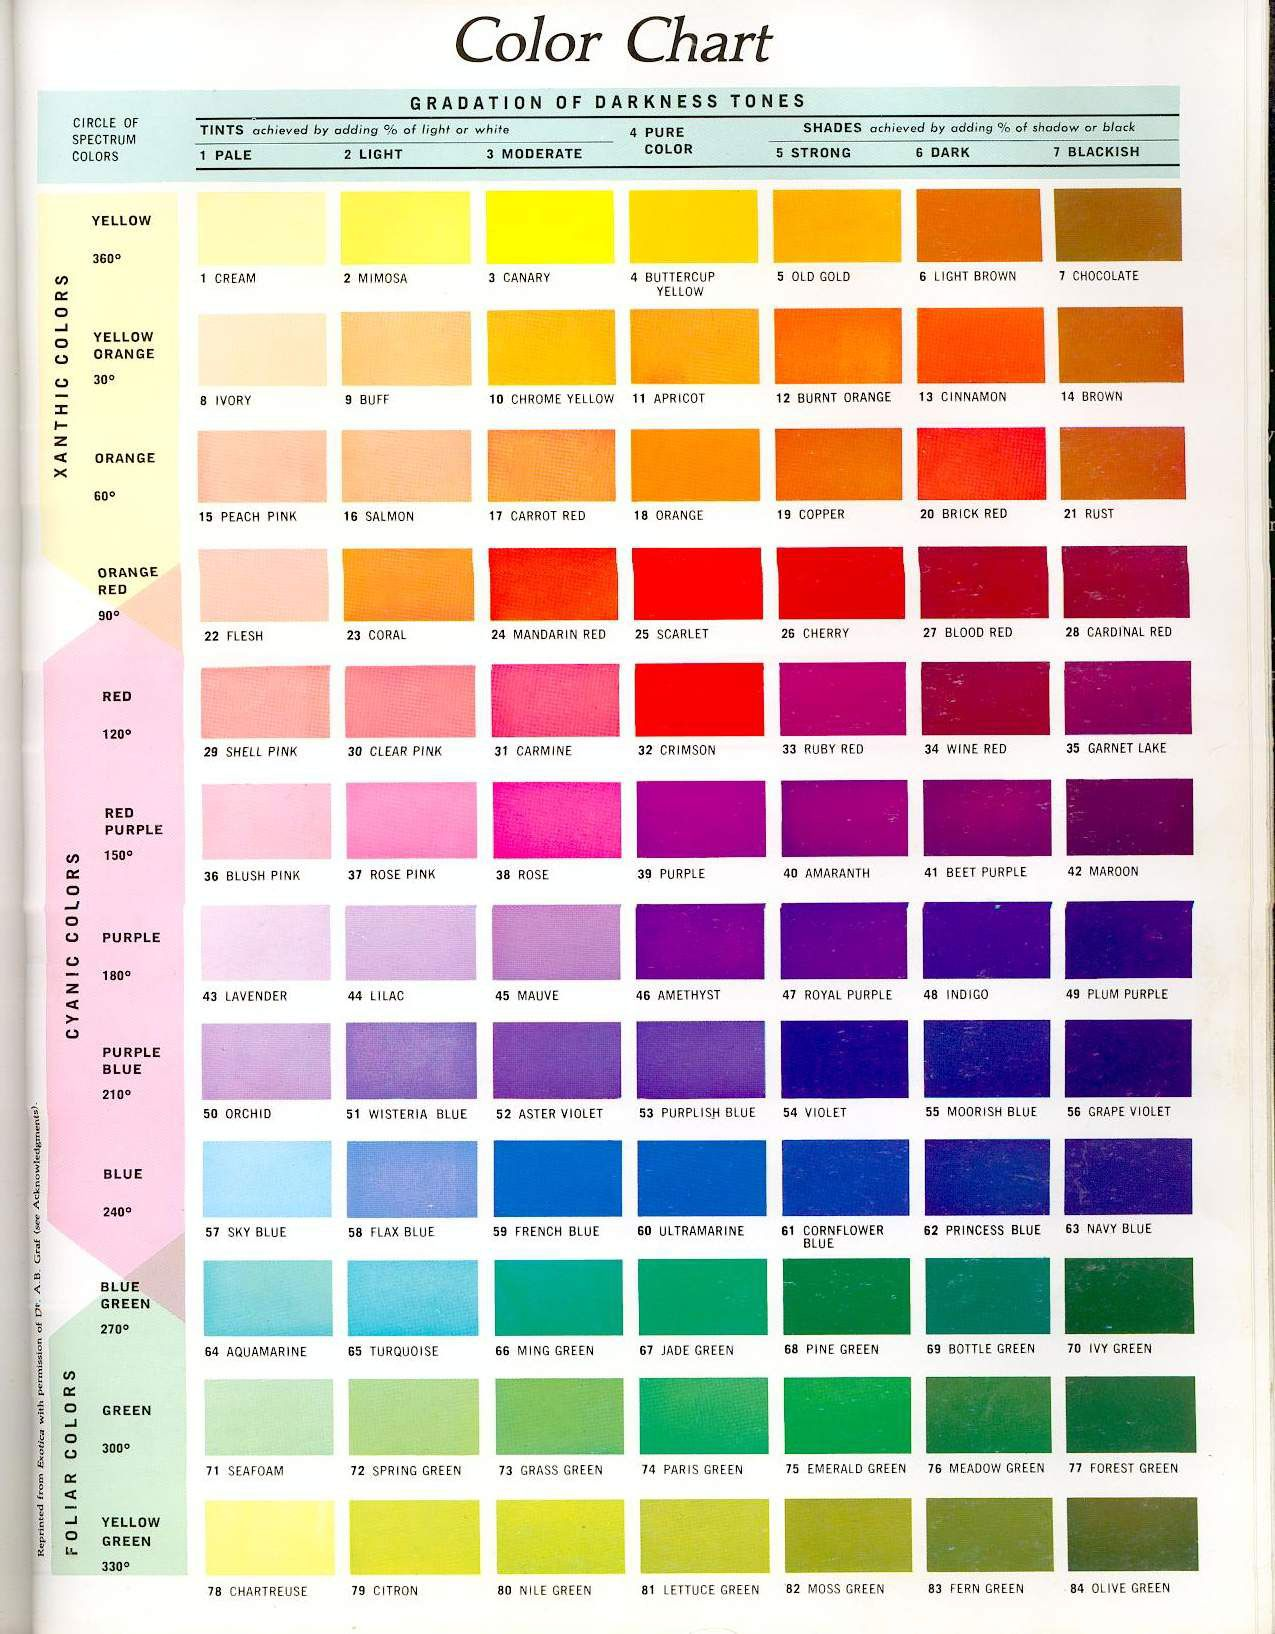 Httpfcbsimagescolourchartg color mixing color mixing nvjuhfo Gallery